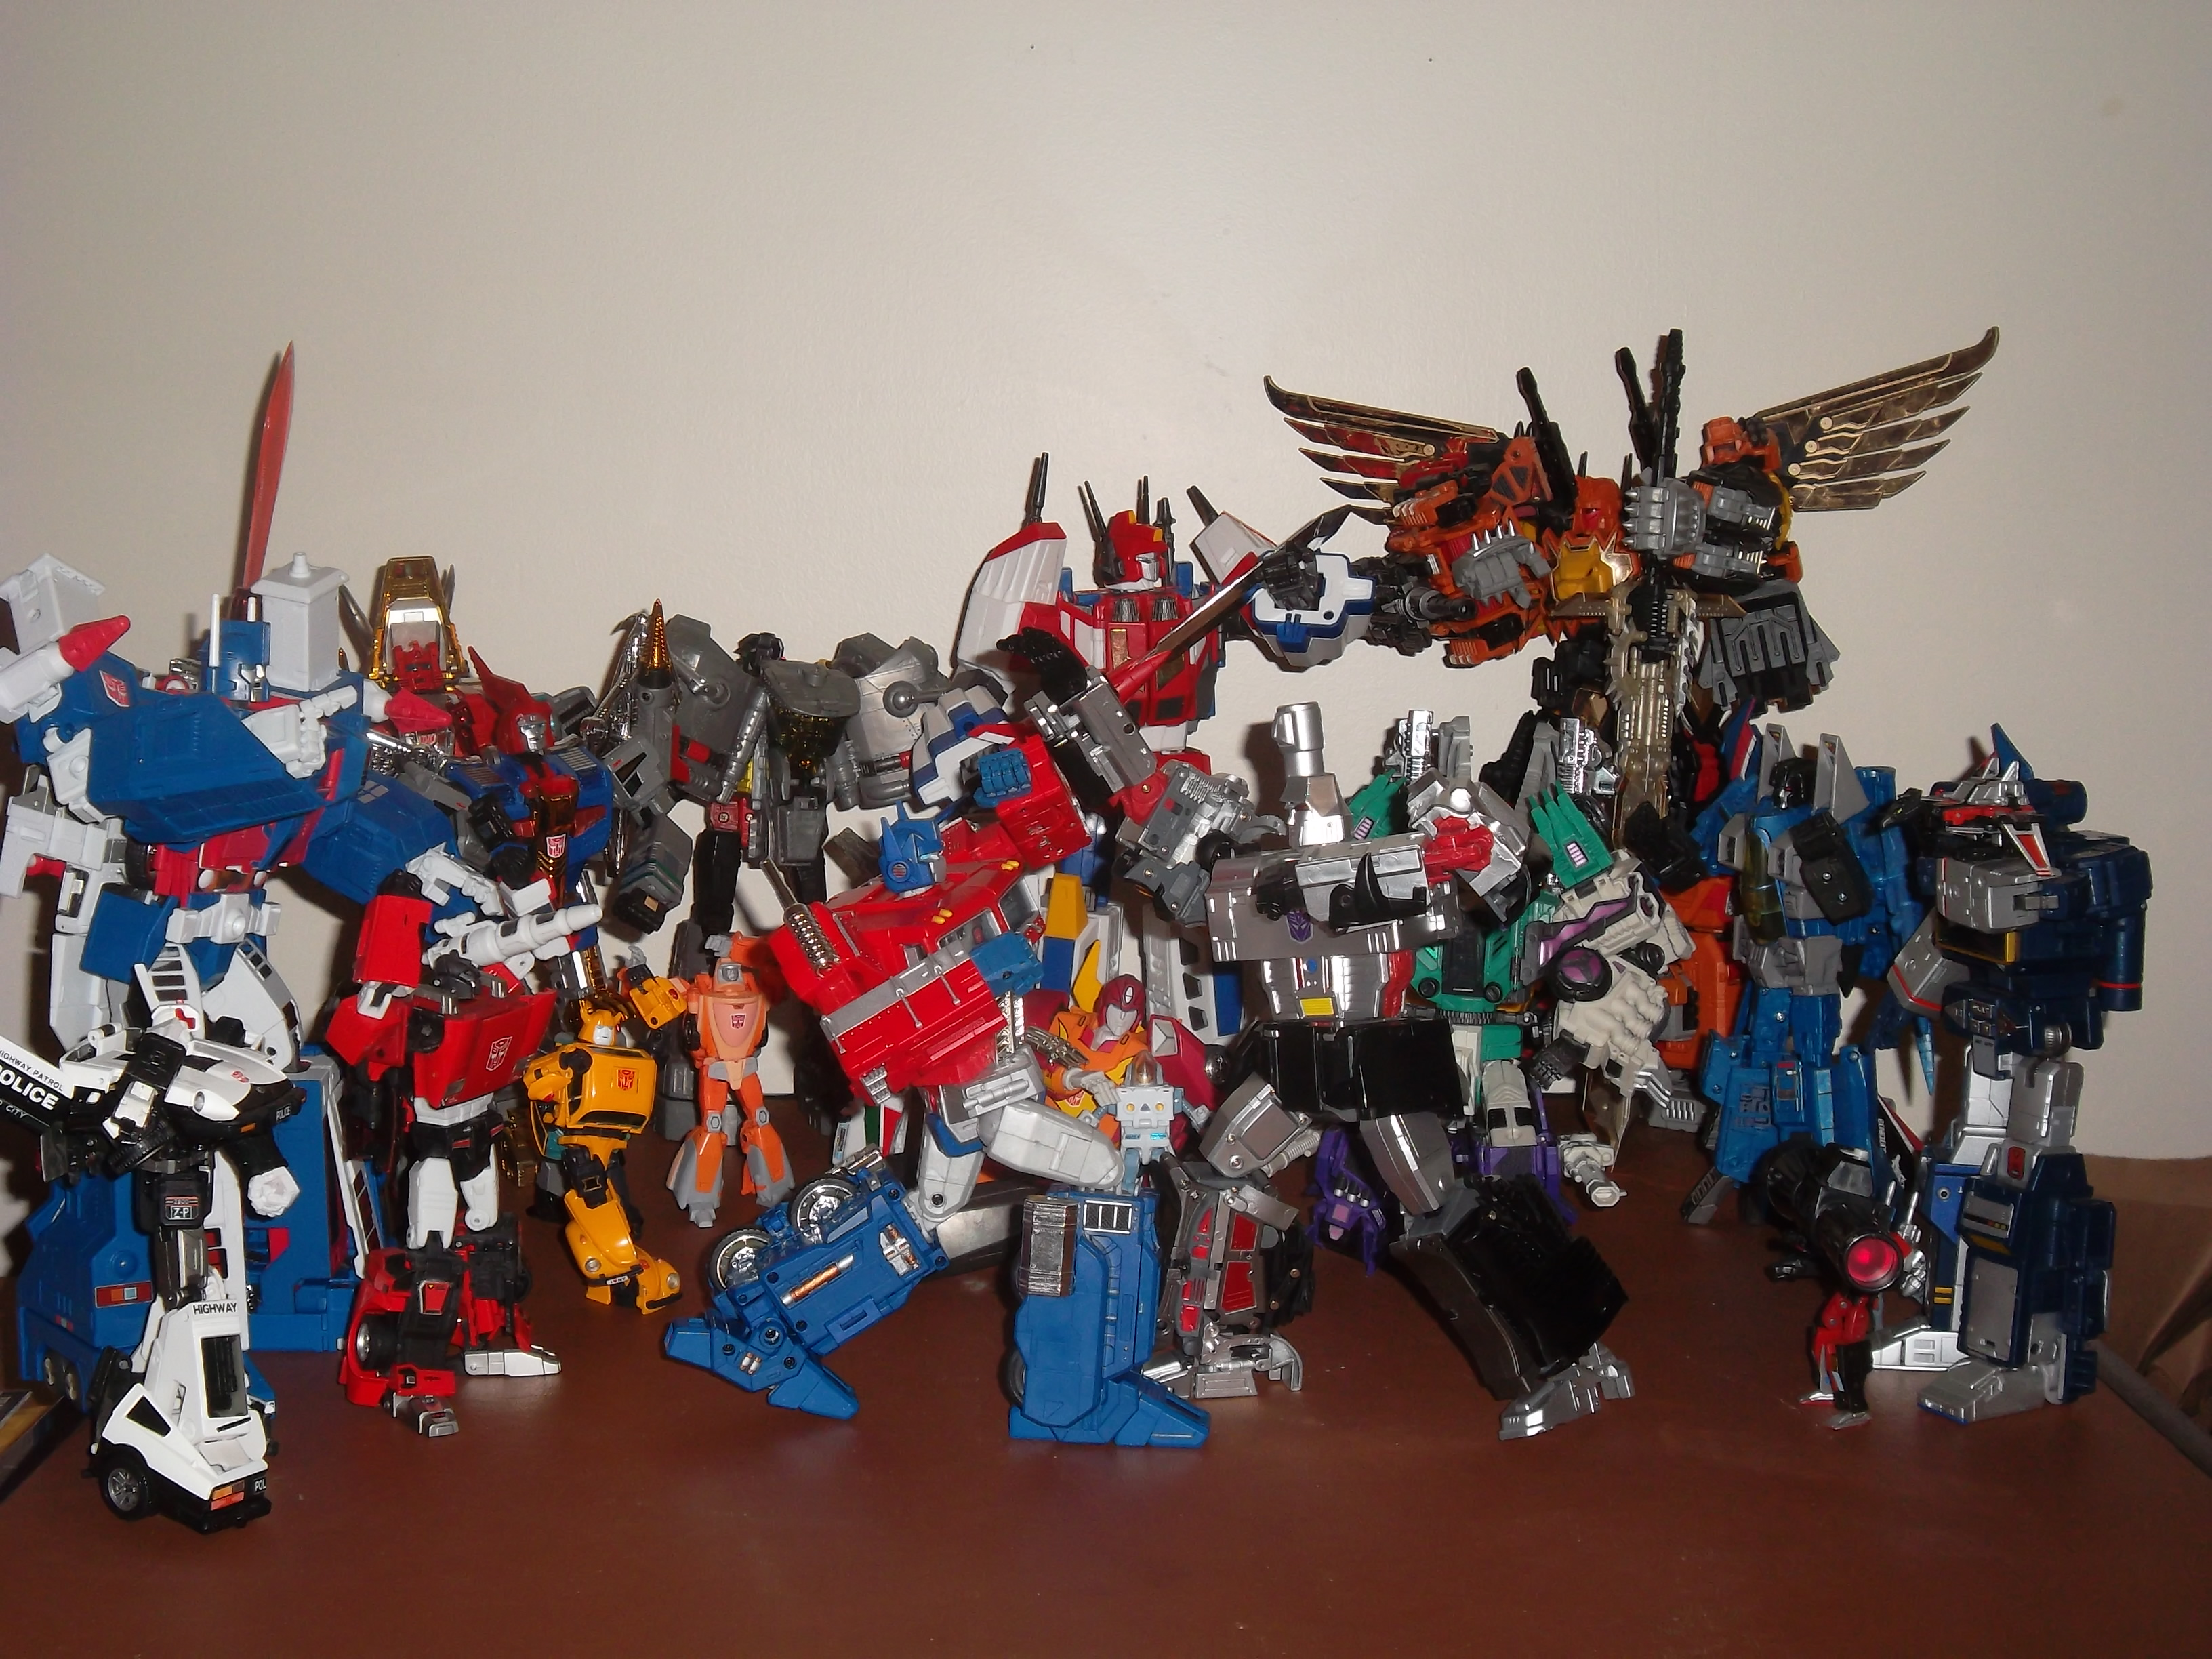 transformers hasbro convoy rumble soundwave takara_tomy grimlock bumble jaguar ultra_magnus rodimus_convoy hot_rodimus prowl lambor wheeljack spike_witwicky star_saber daniel_witwicky transformers:_victory hisashi_yuki the_transformers:_the_movie transformers_2010 floro_dery kobayashi_hironori the_transformers:_masterpiece